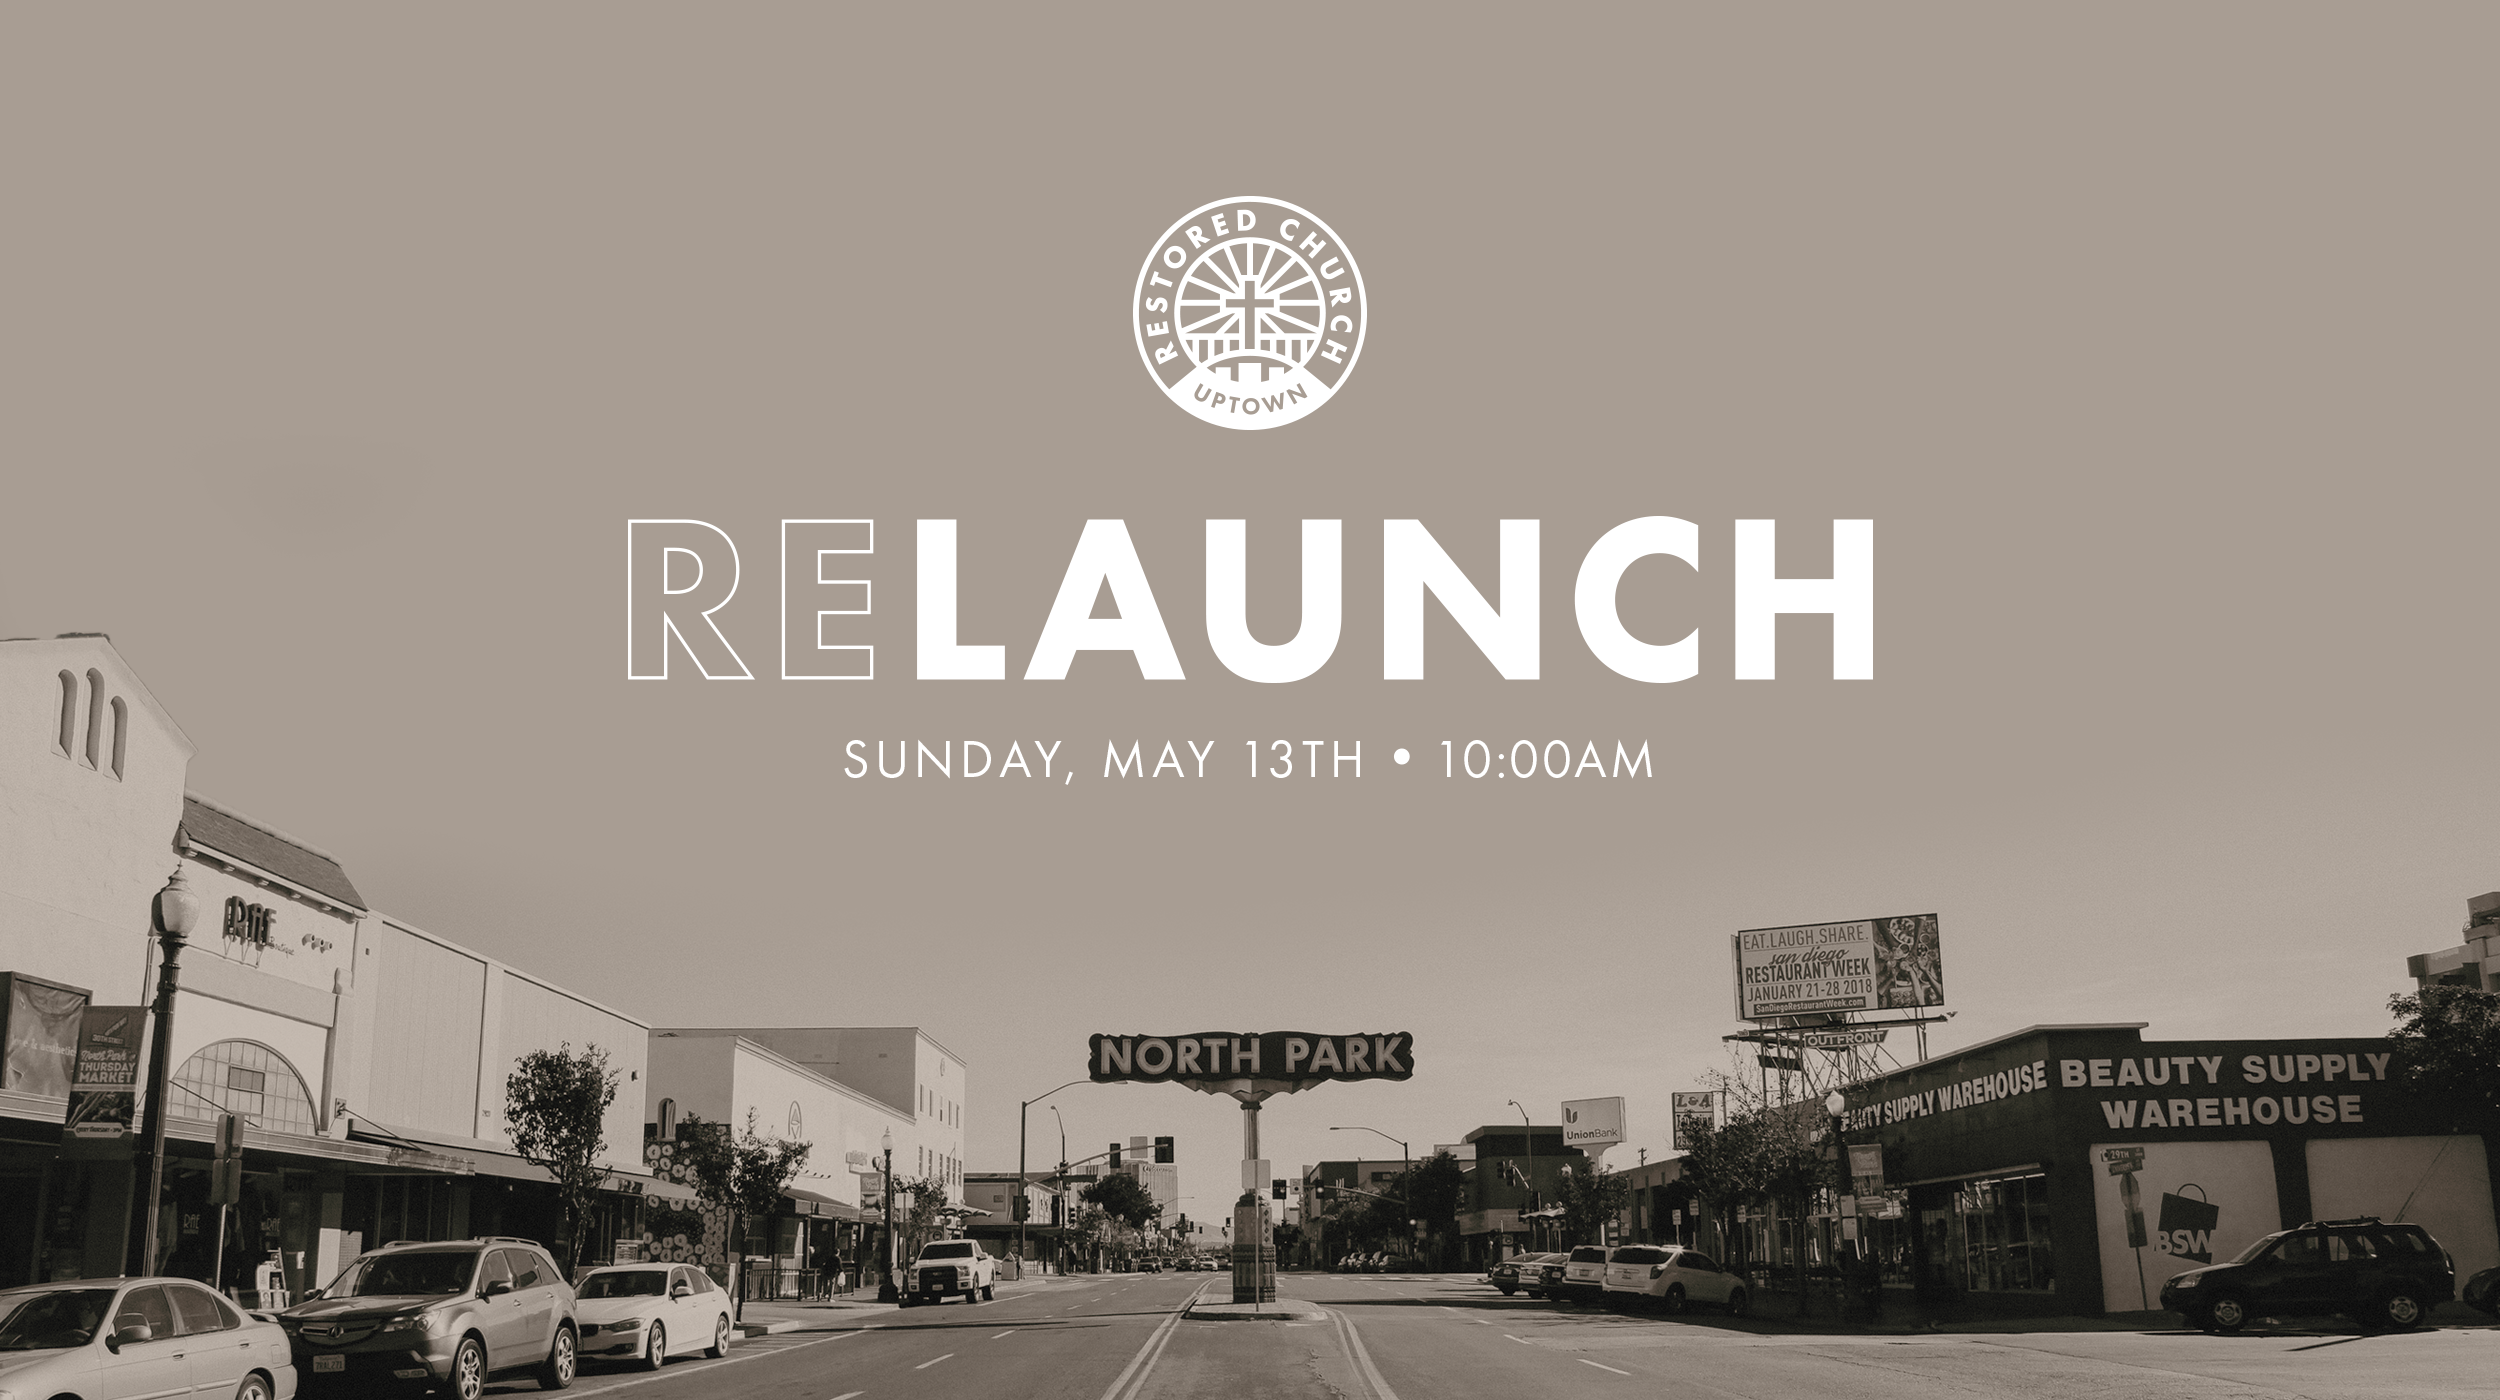 Join us on Sunday, May 13th at 10am at Jefferson Elementary in North Park for our relaunch! Also, check out to our prayer meeting at 9am if you can!